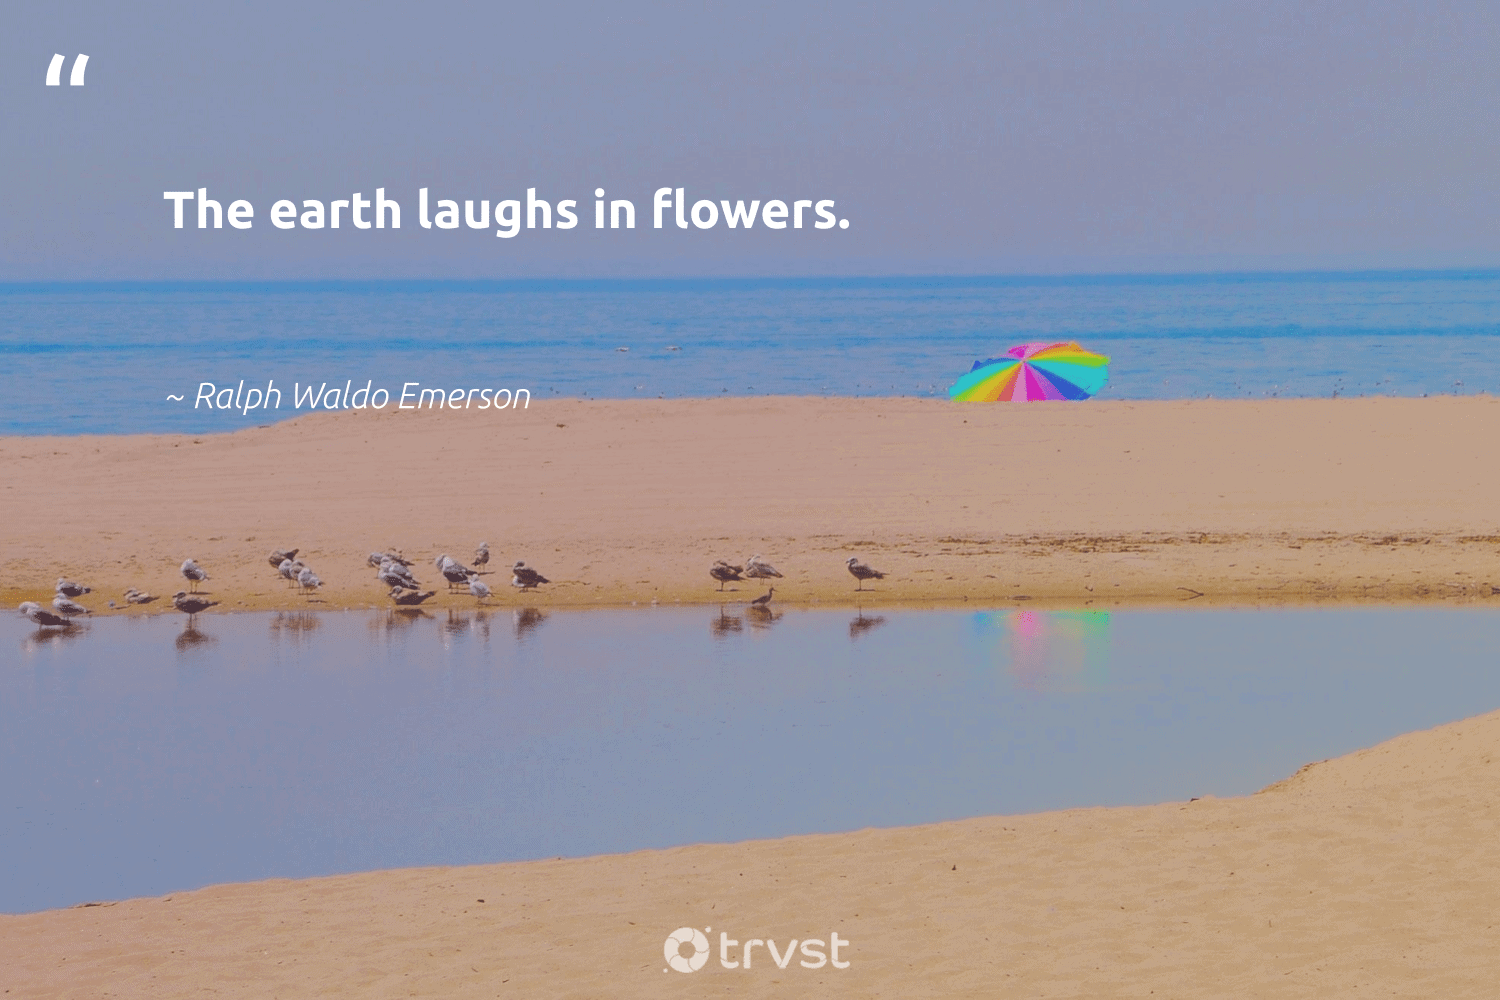 """""""The earth laughs in flowers.""""  - Ralph Waldo Emerson #trvst #quotes #environment #earth #flowers #mothernature #giveback #savetheplanet #thinkgreen #conservation #gogreen #volunteer"""